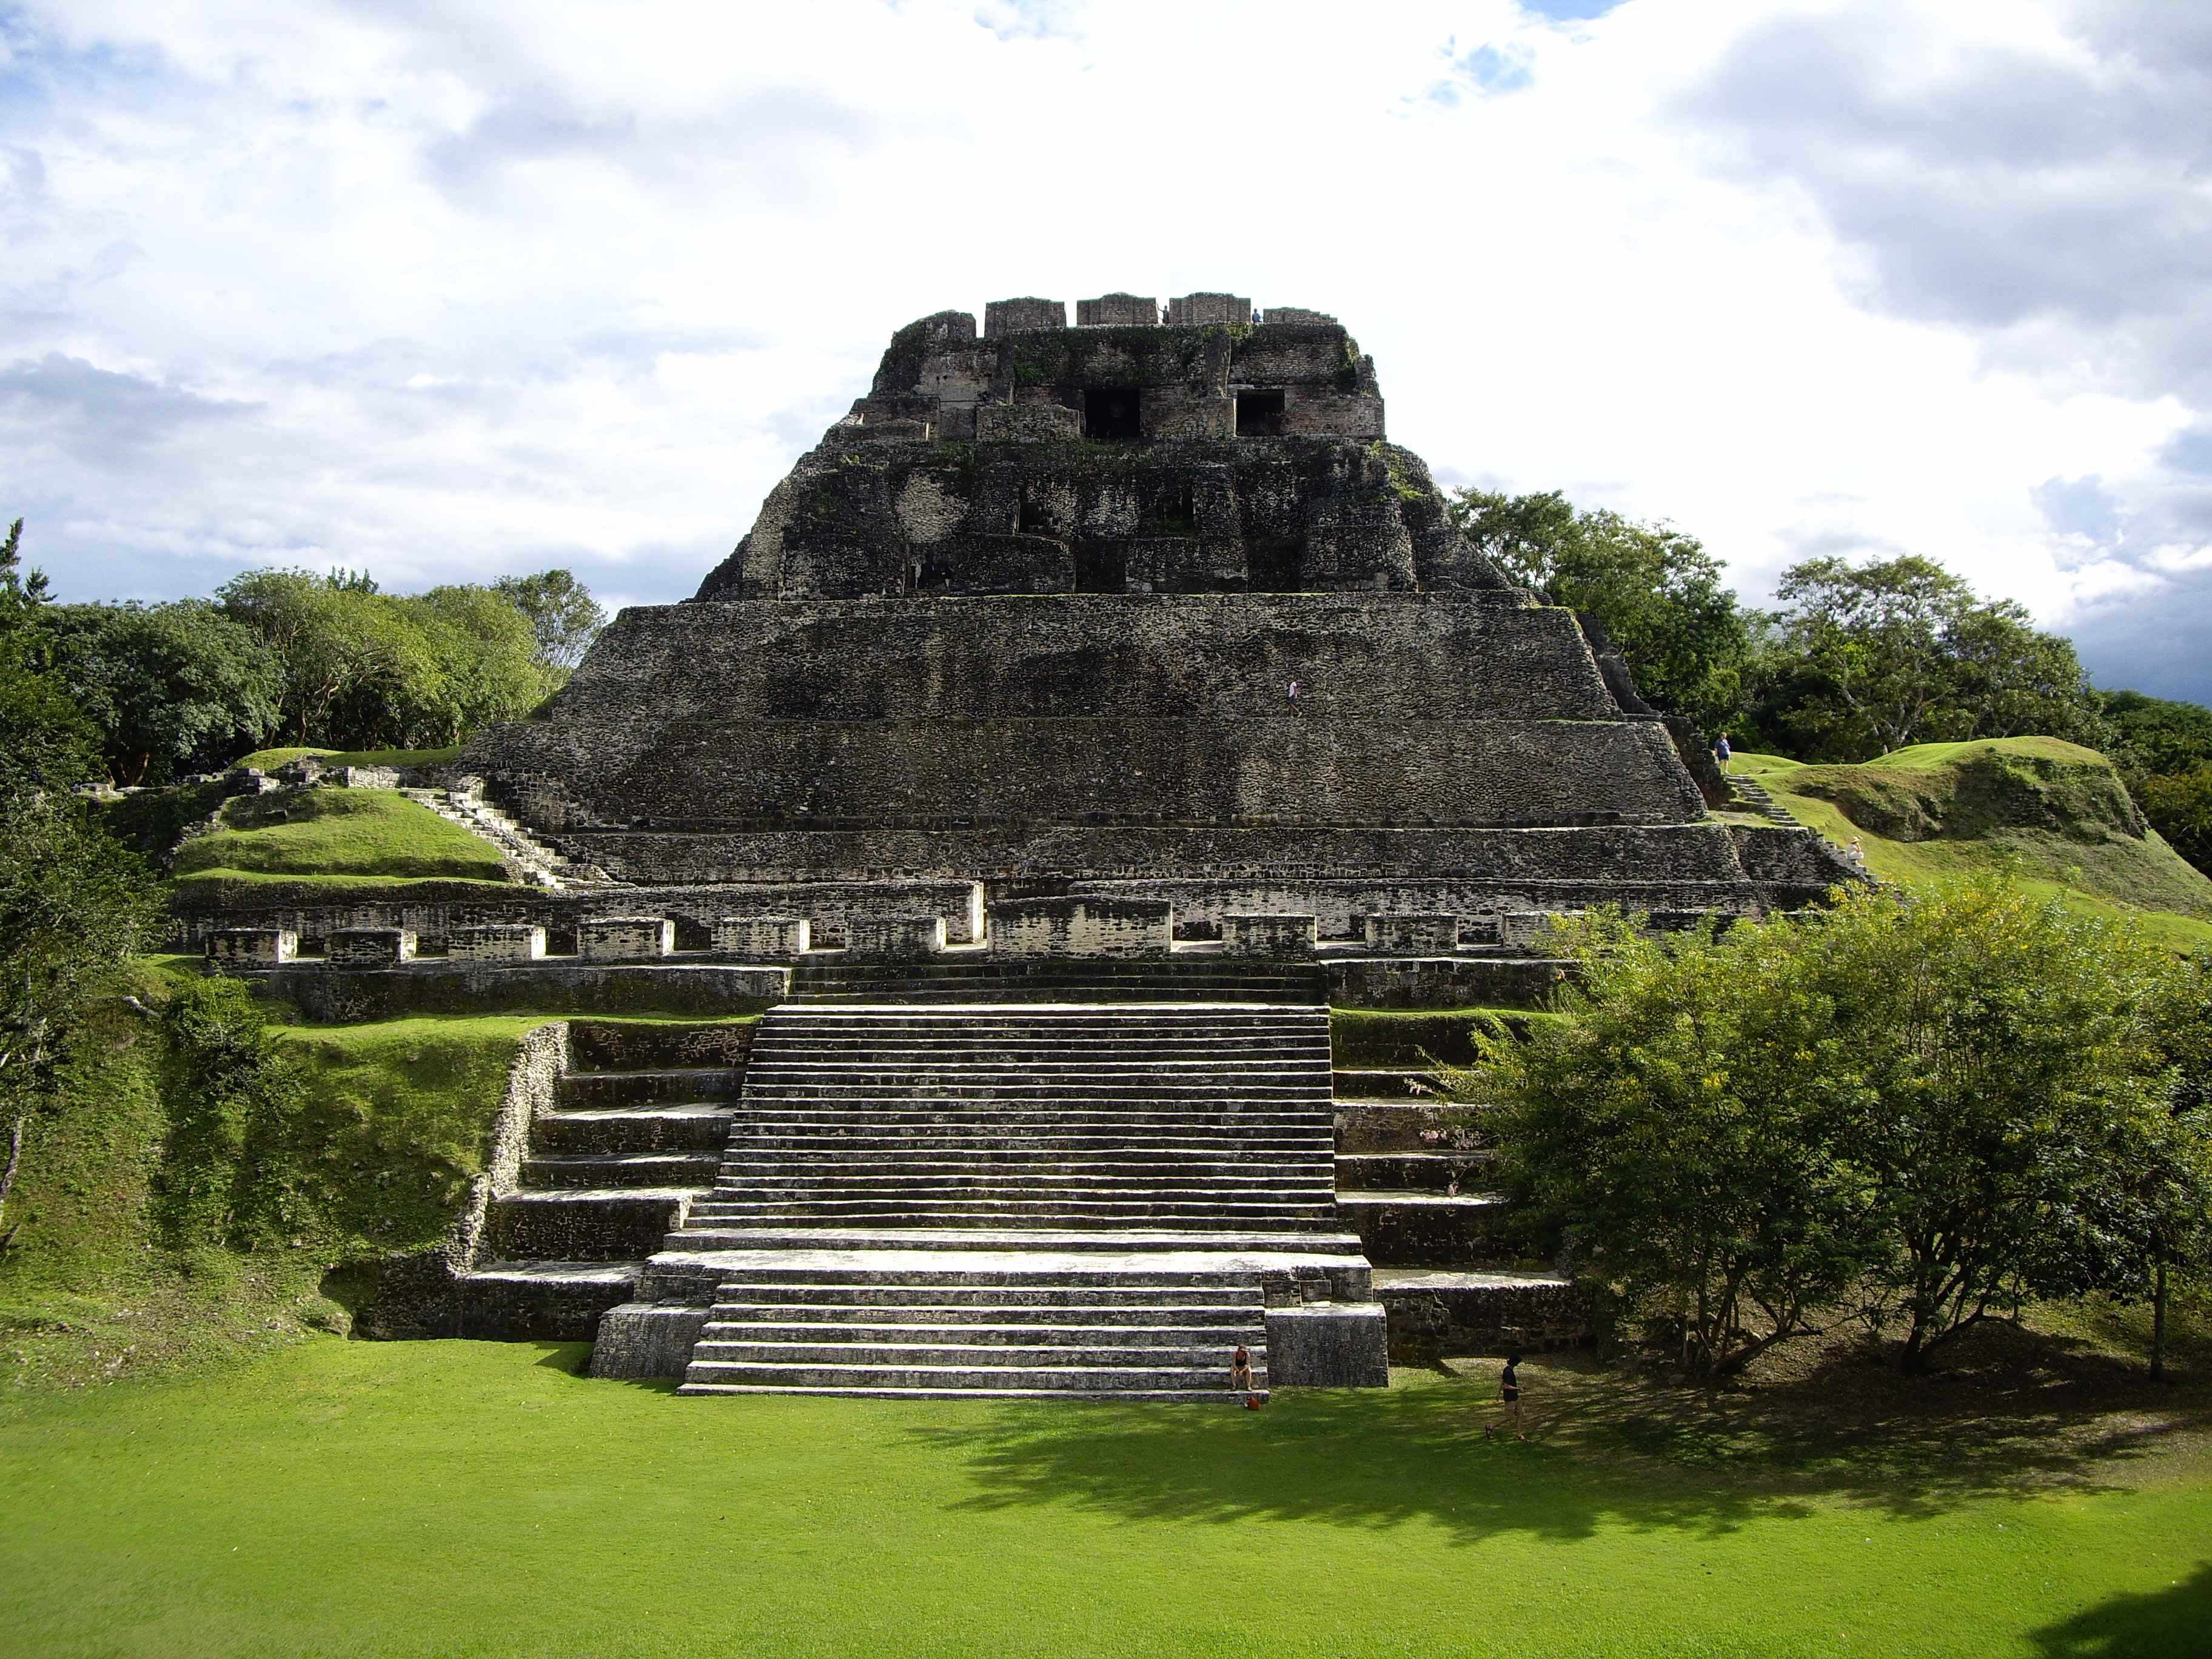 The stairs going up the pyramid at Xunantunich